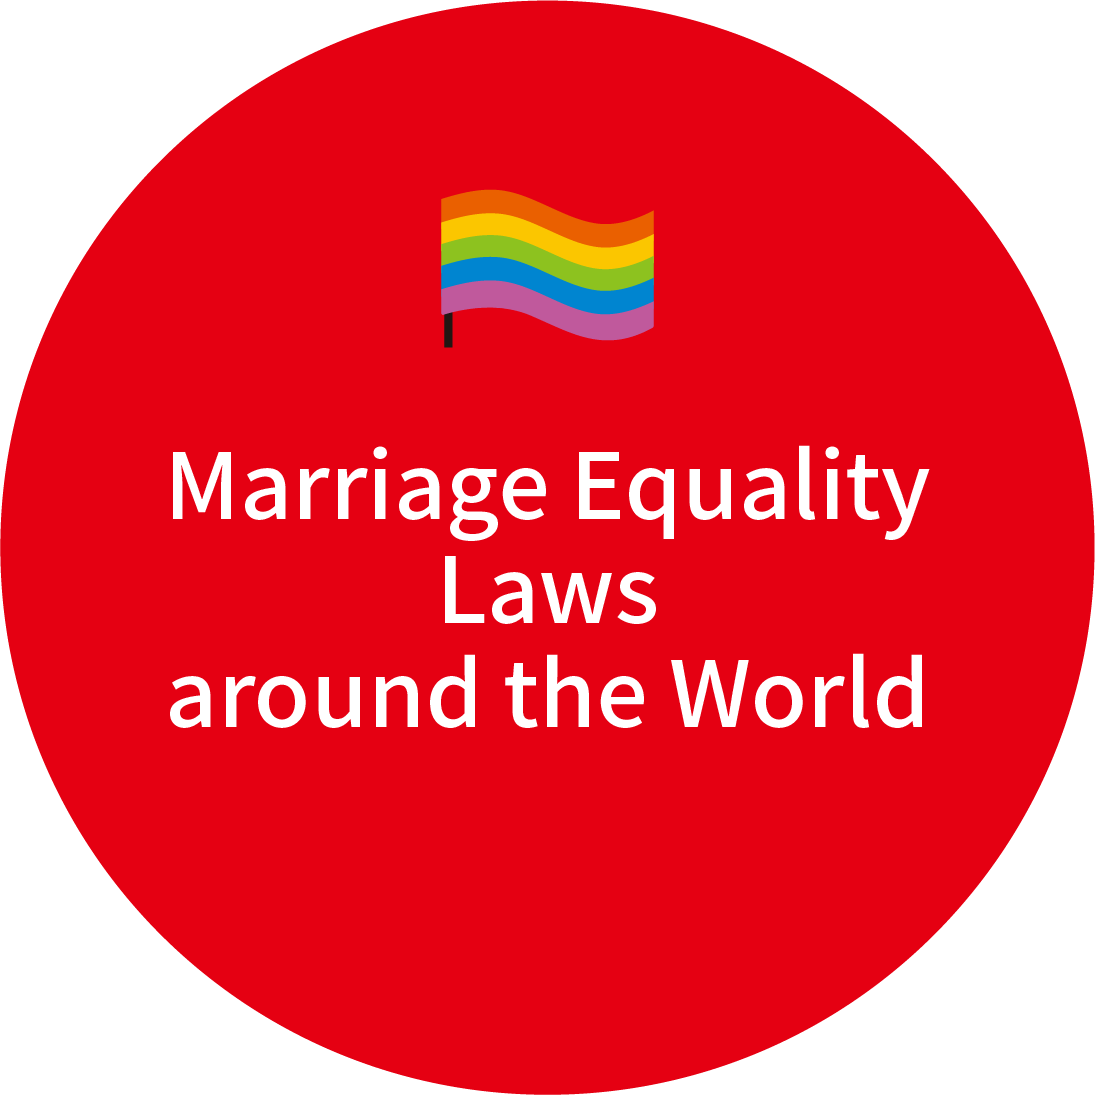 Marriage Equality Laws around the World